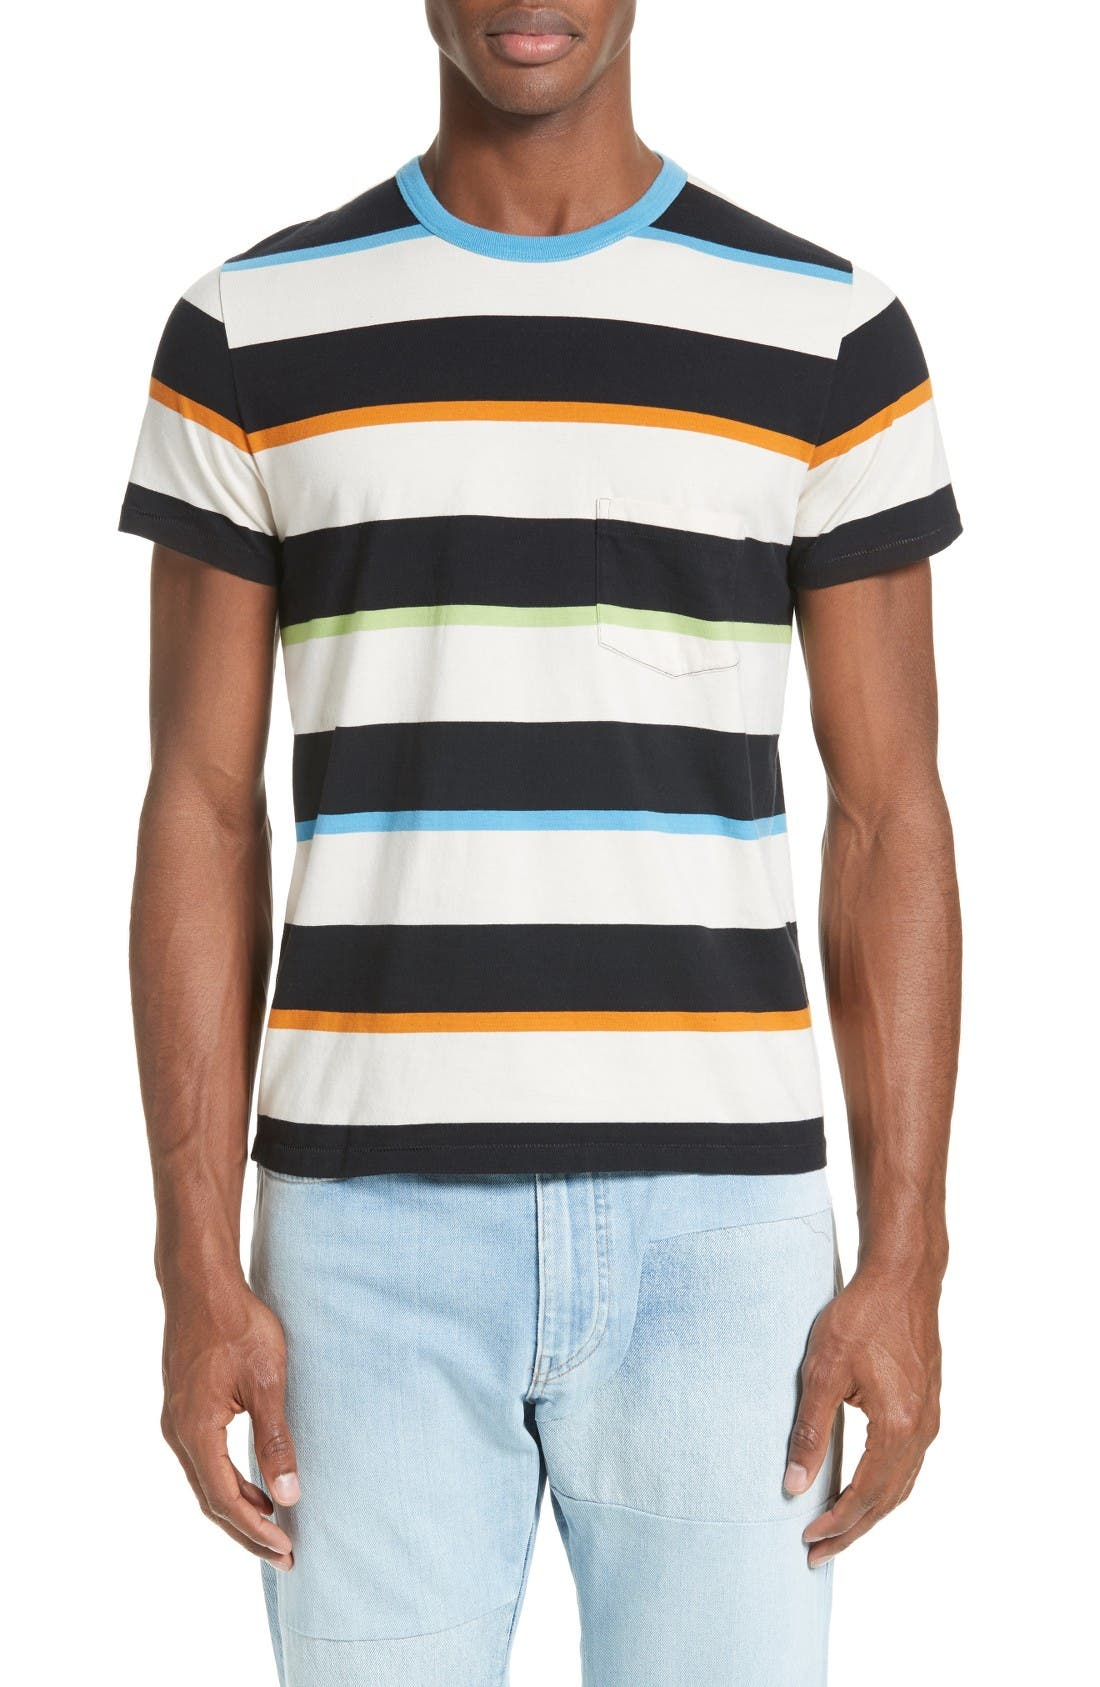 LEVI'S® VINTAGE CLOTHING 1960s Stripe T-Shirt